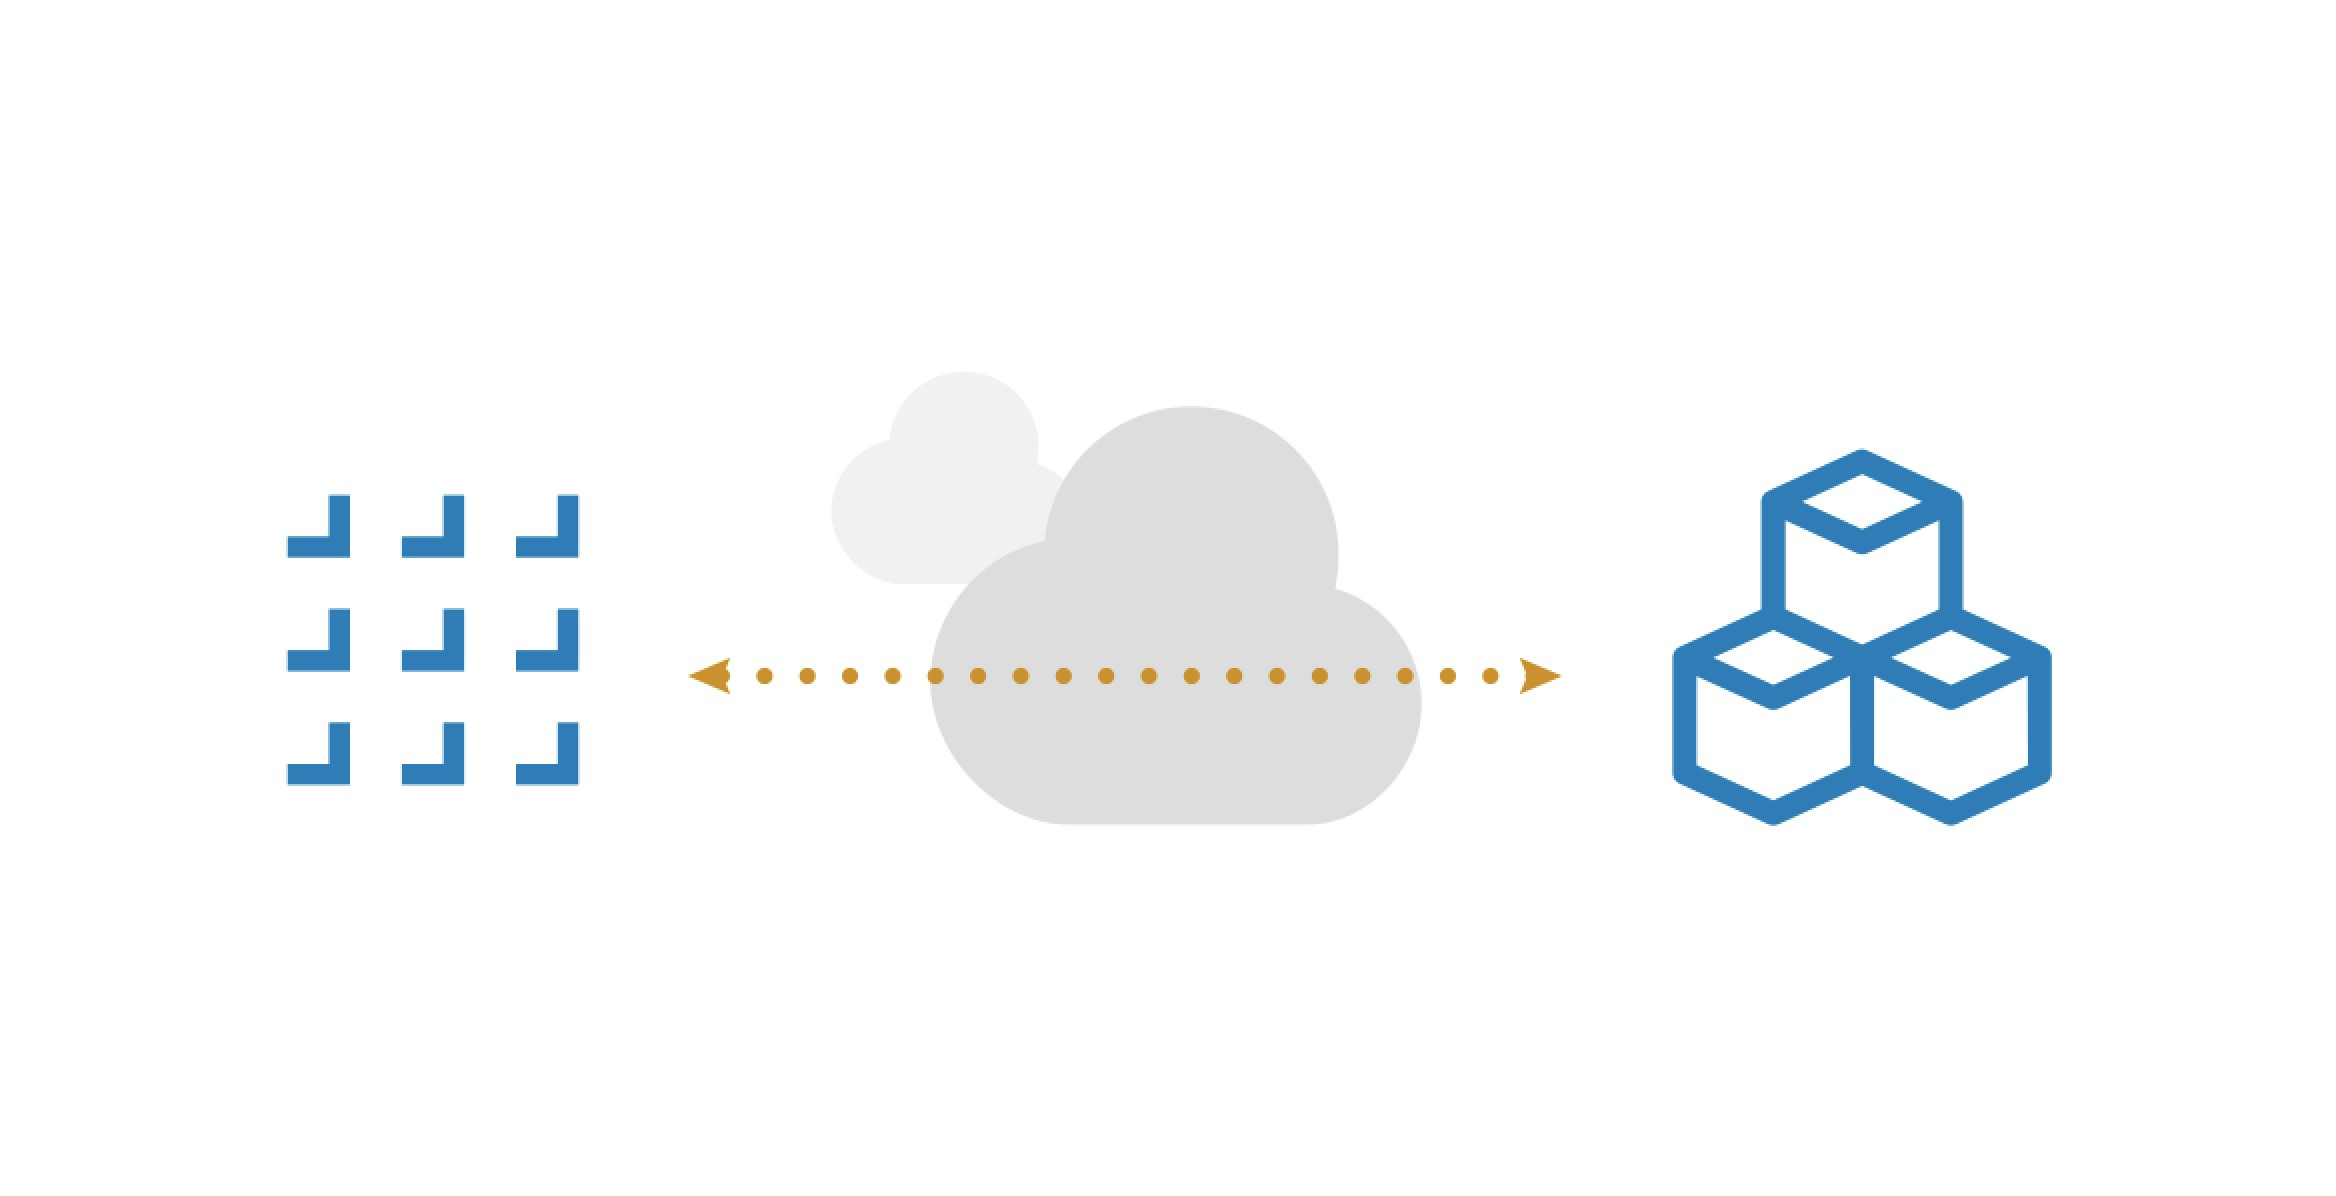 Hybrid Engine Diagram Configuring Hybrid Linked Mode Hlm for Vmware Cloud On Aws Of Hybrid Engine Diagram Configuring Hybrid Linked Mode Hlm for Vmware Cloud On Aws